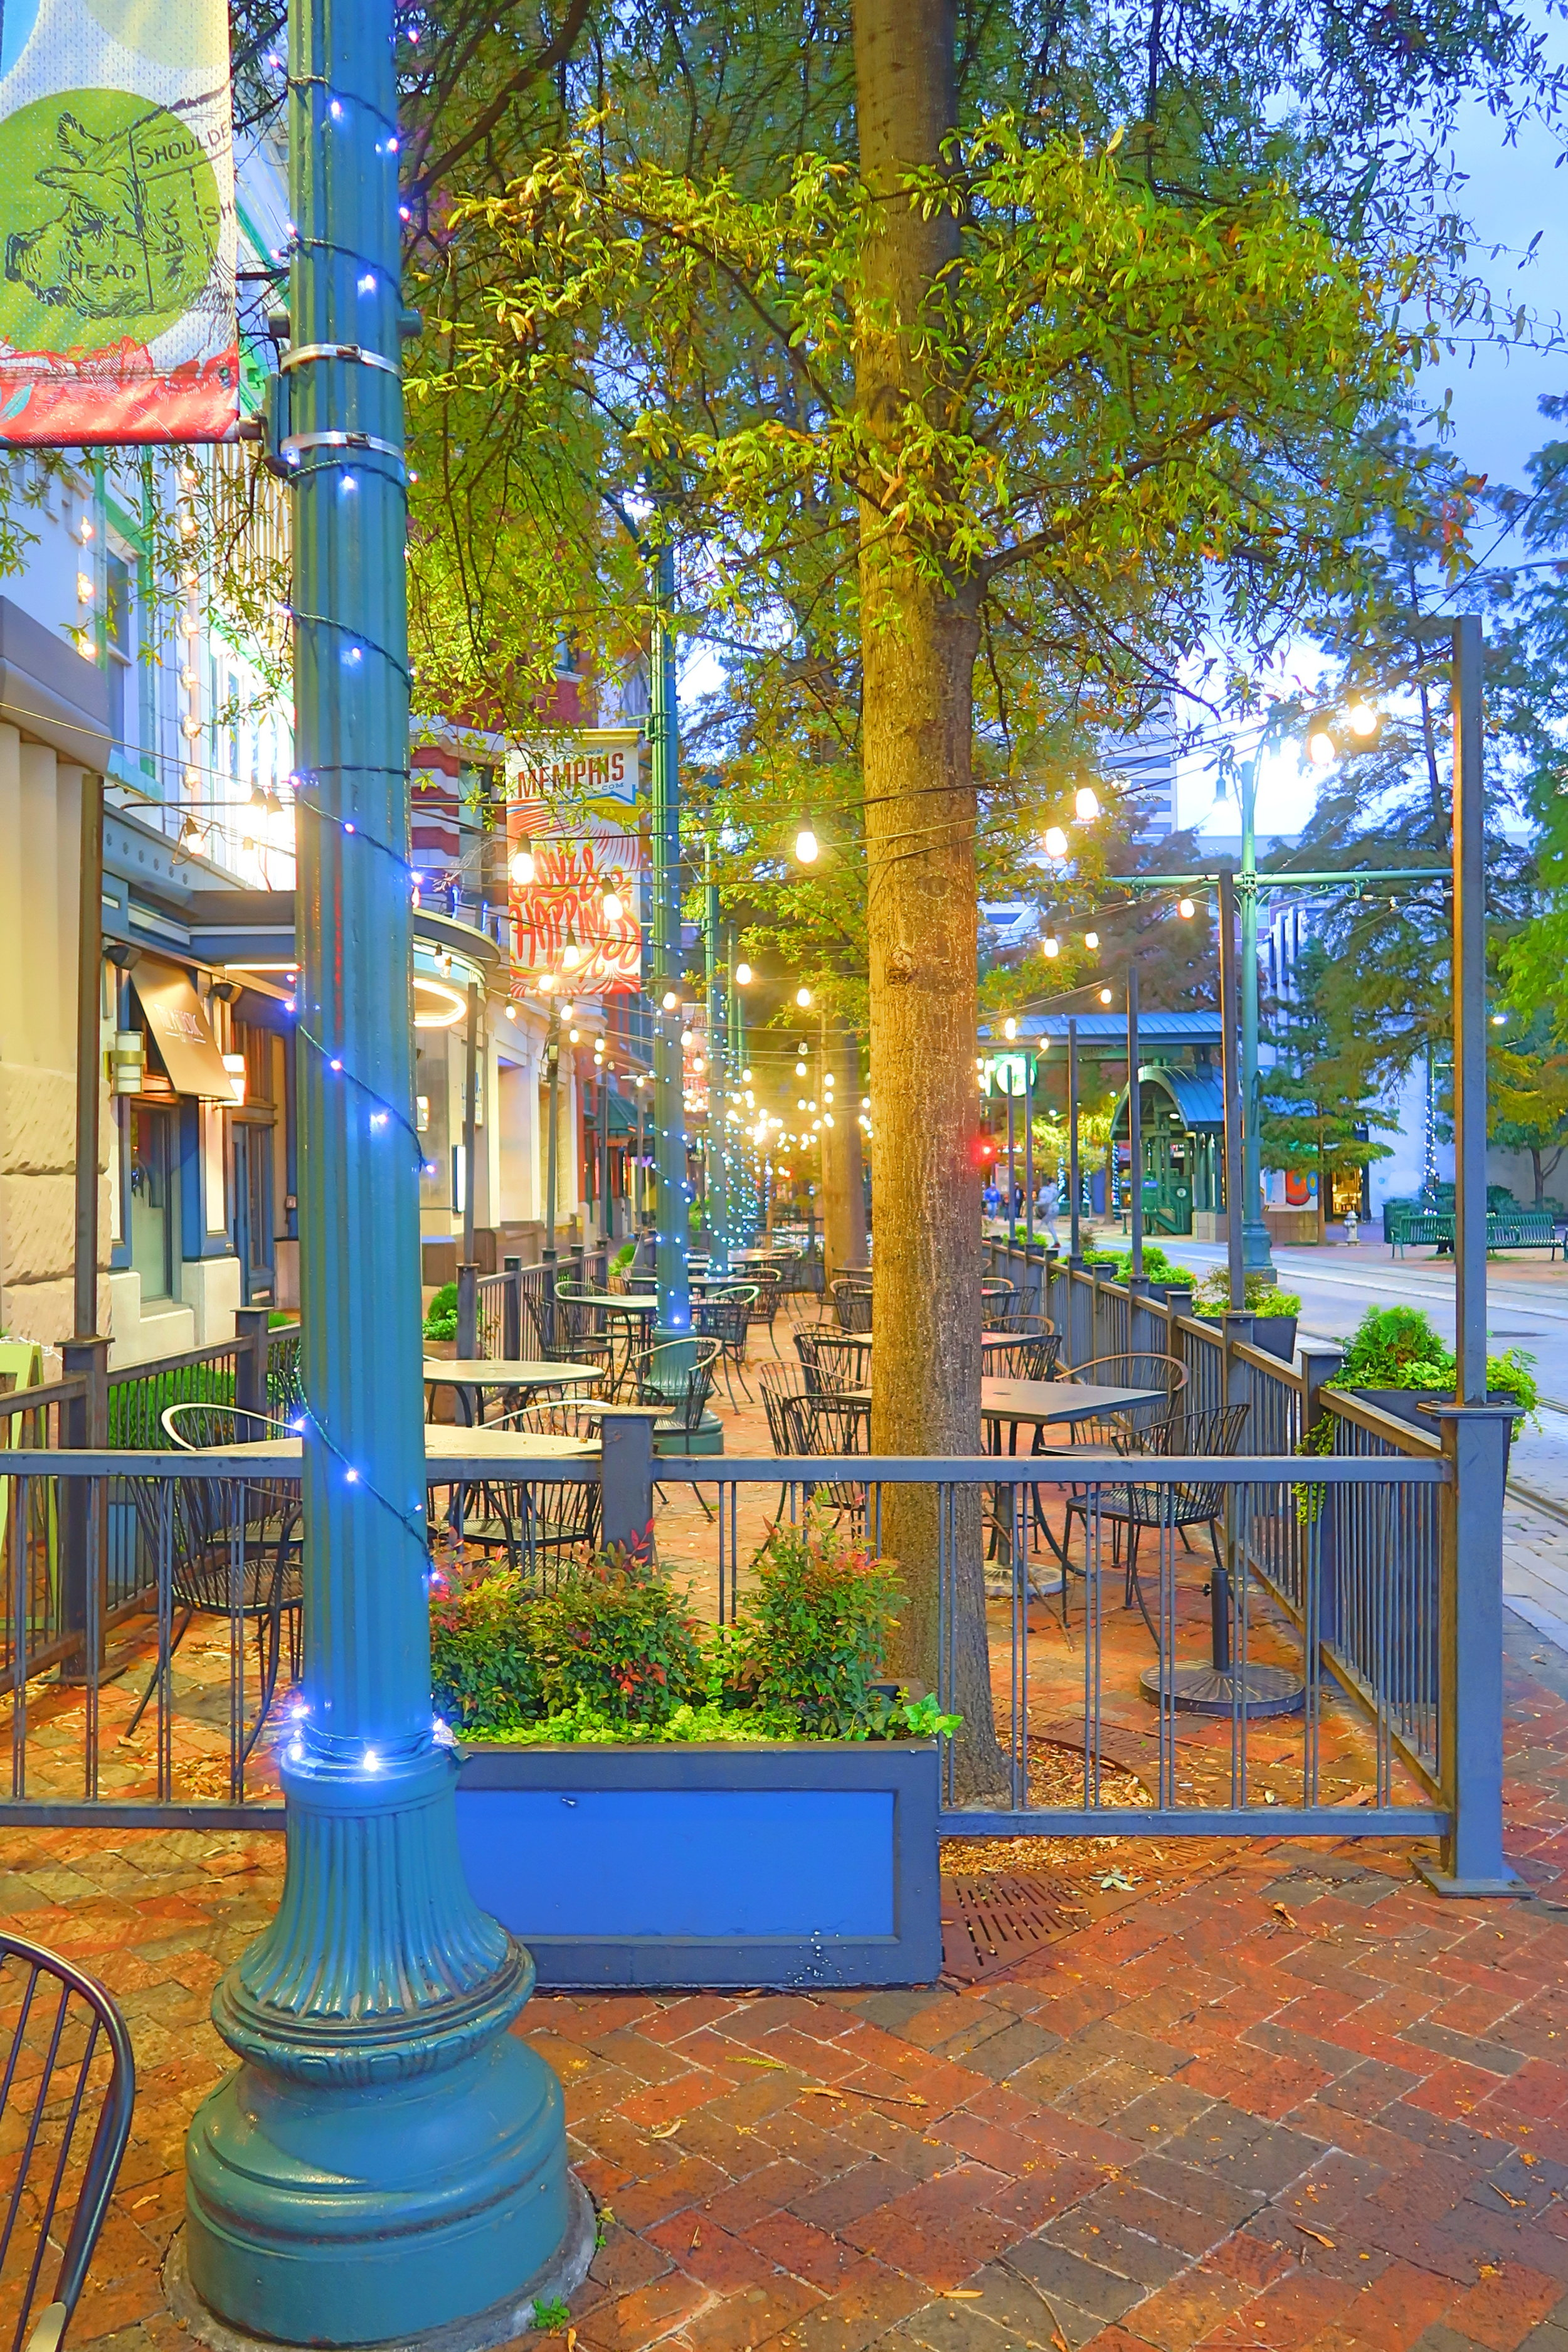 The lights of Main Street in Memphis, TN invite visitors to explore the shops and restaurants.